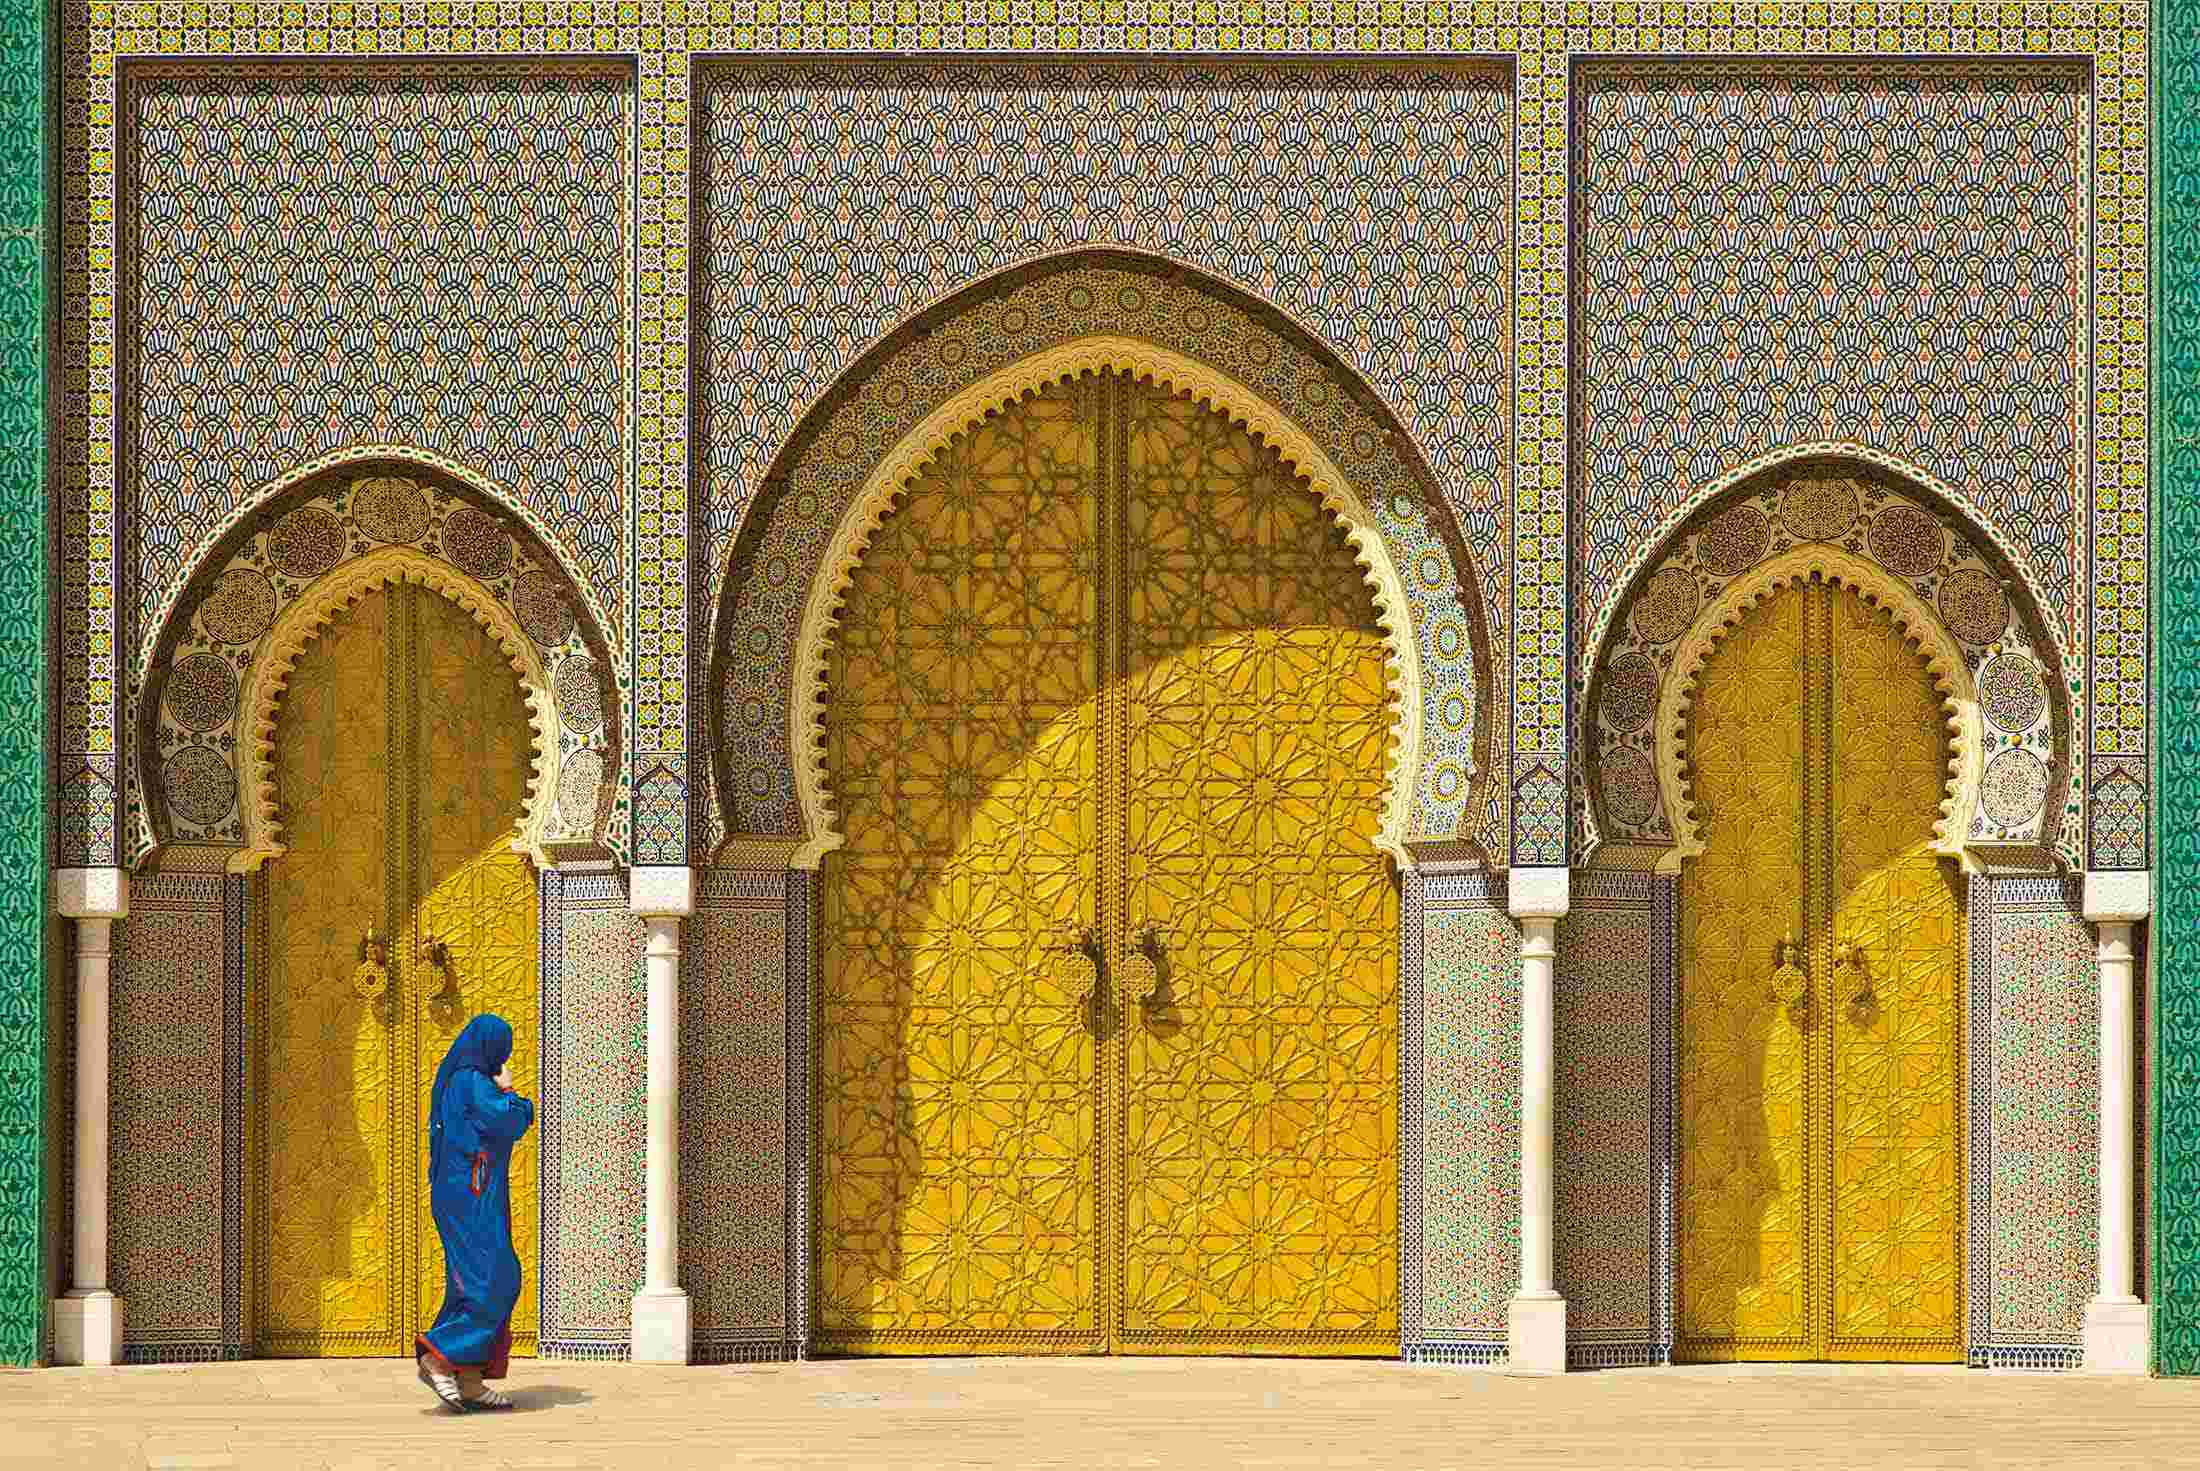 Classic Morocco overview | Classic Morocco EN-US